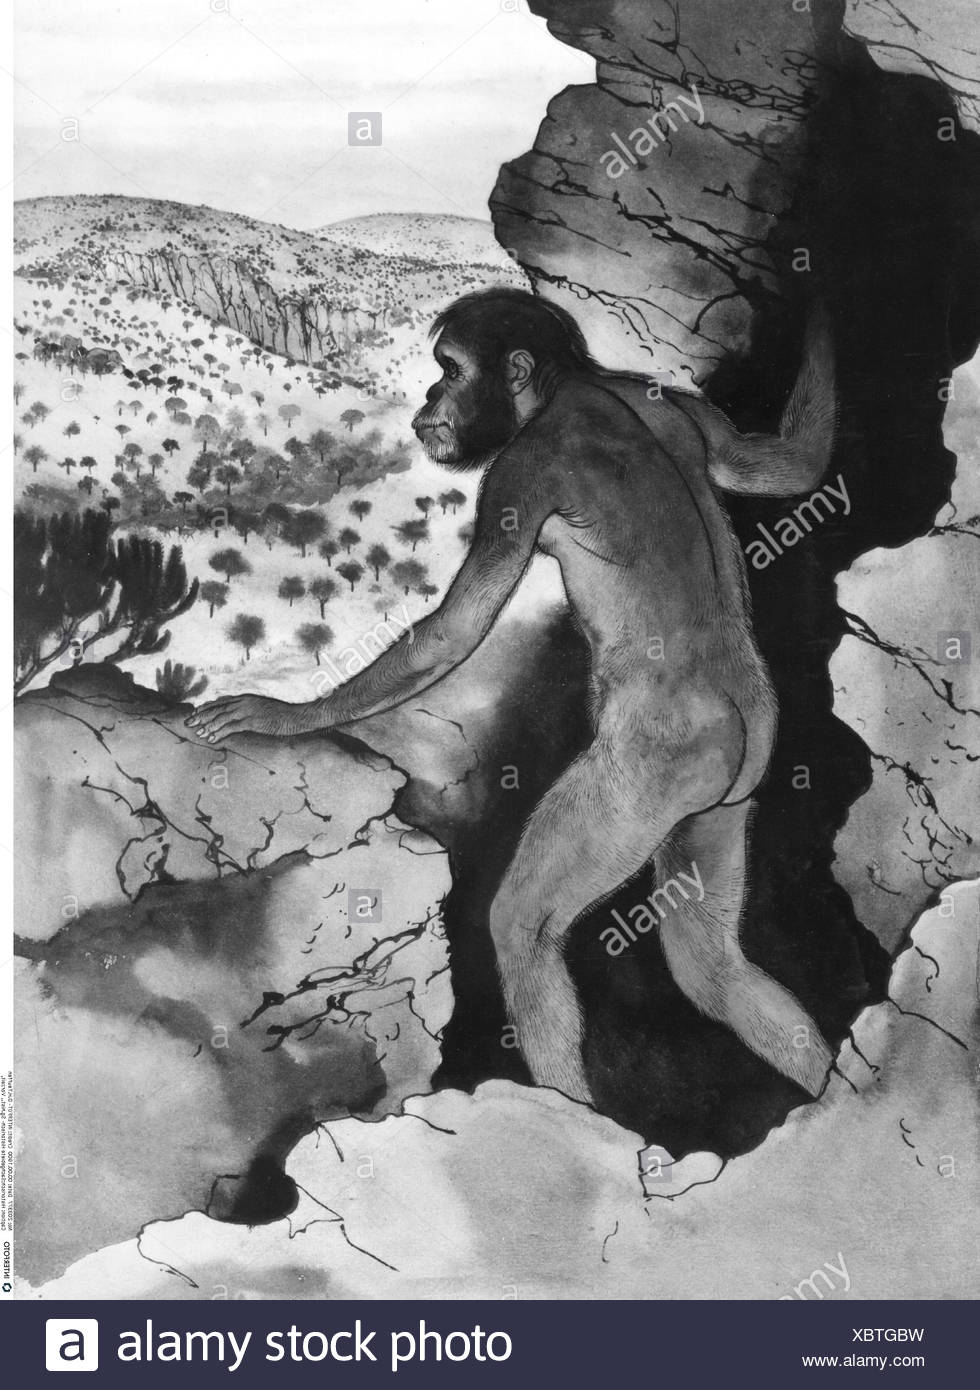 prehistory, life image of the Australopithecus, drawing of Maurice Wilson, Additional-Rights-Clearences-NA - Stock Image